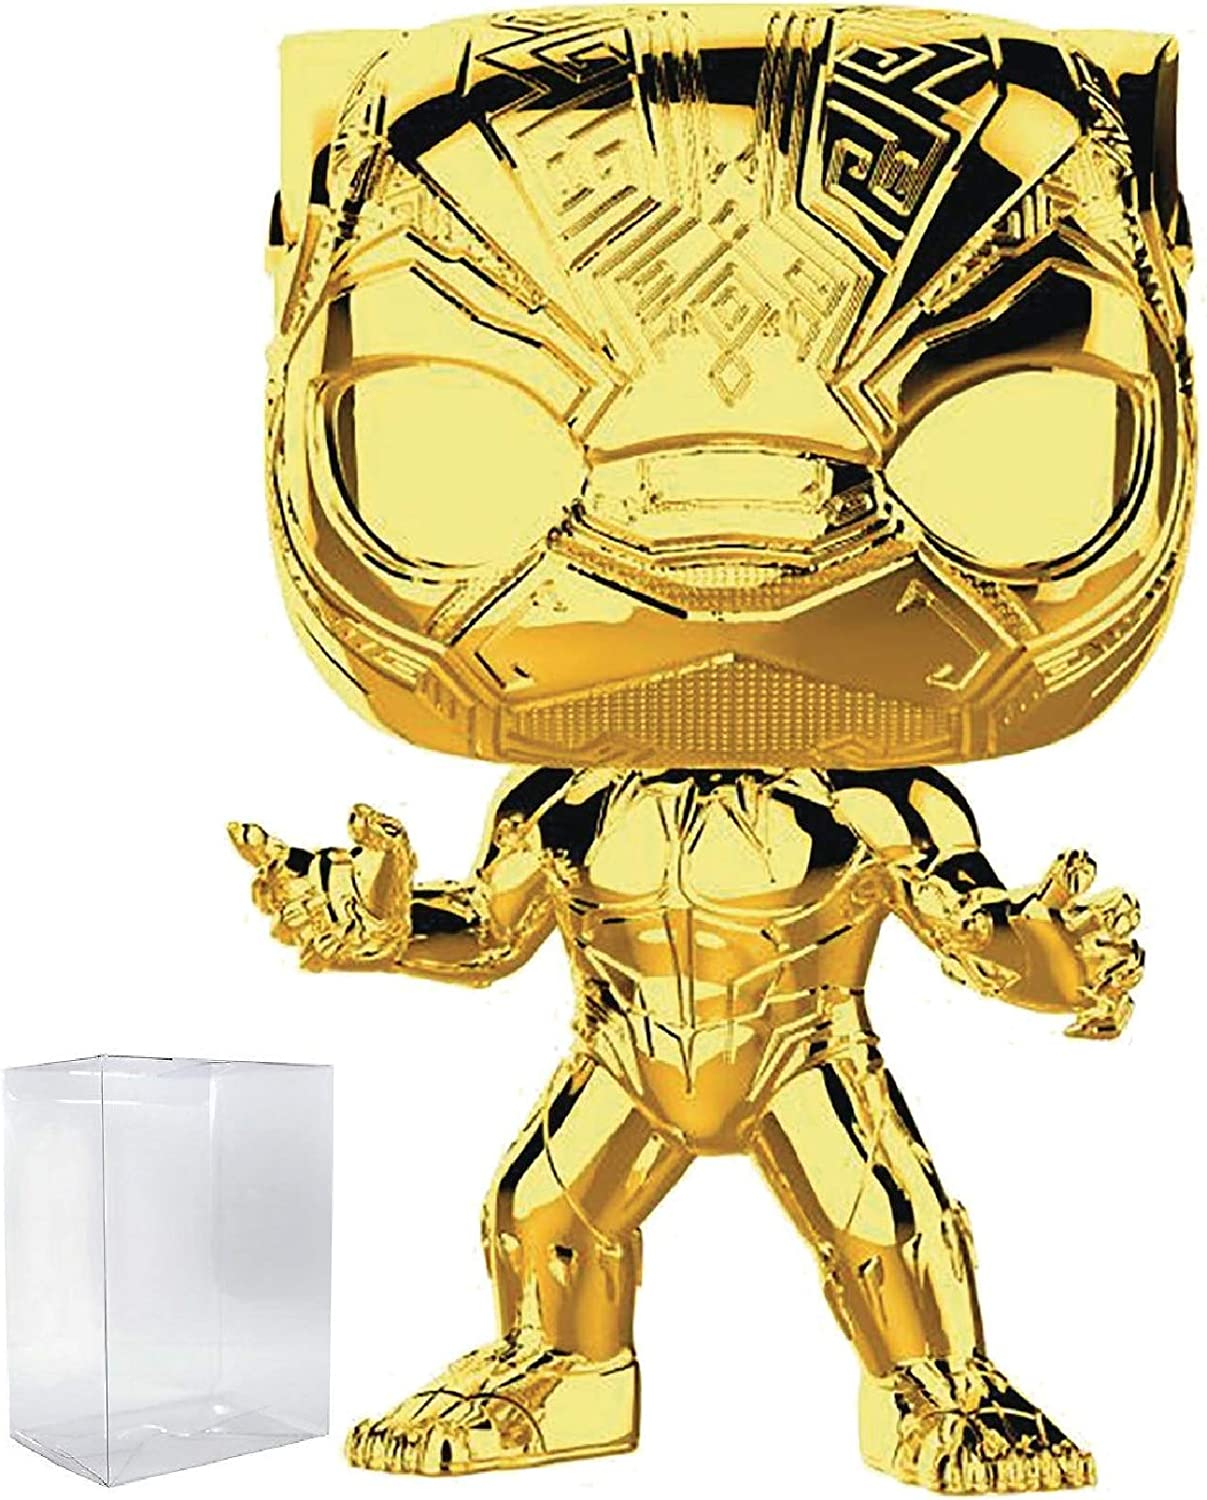 Marvel Studios 10th Anniversary - Black Panther (Gold Chrome) Funko Pop! Vinyl Figure (Includes Compatible Pop Box Protector Case)